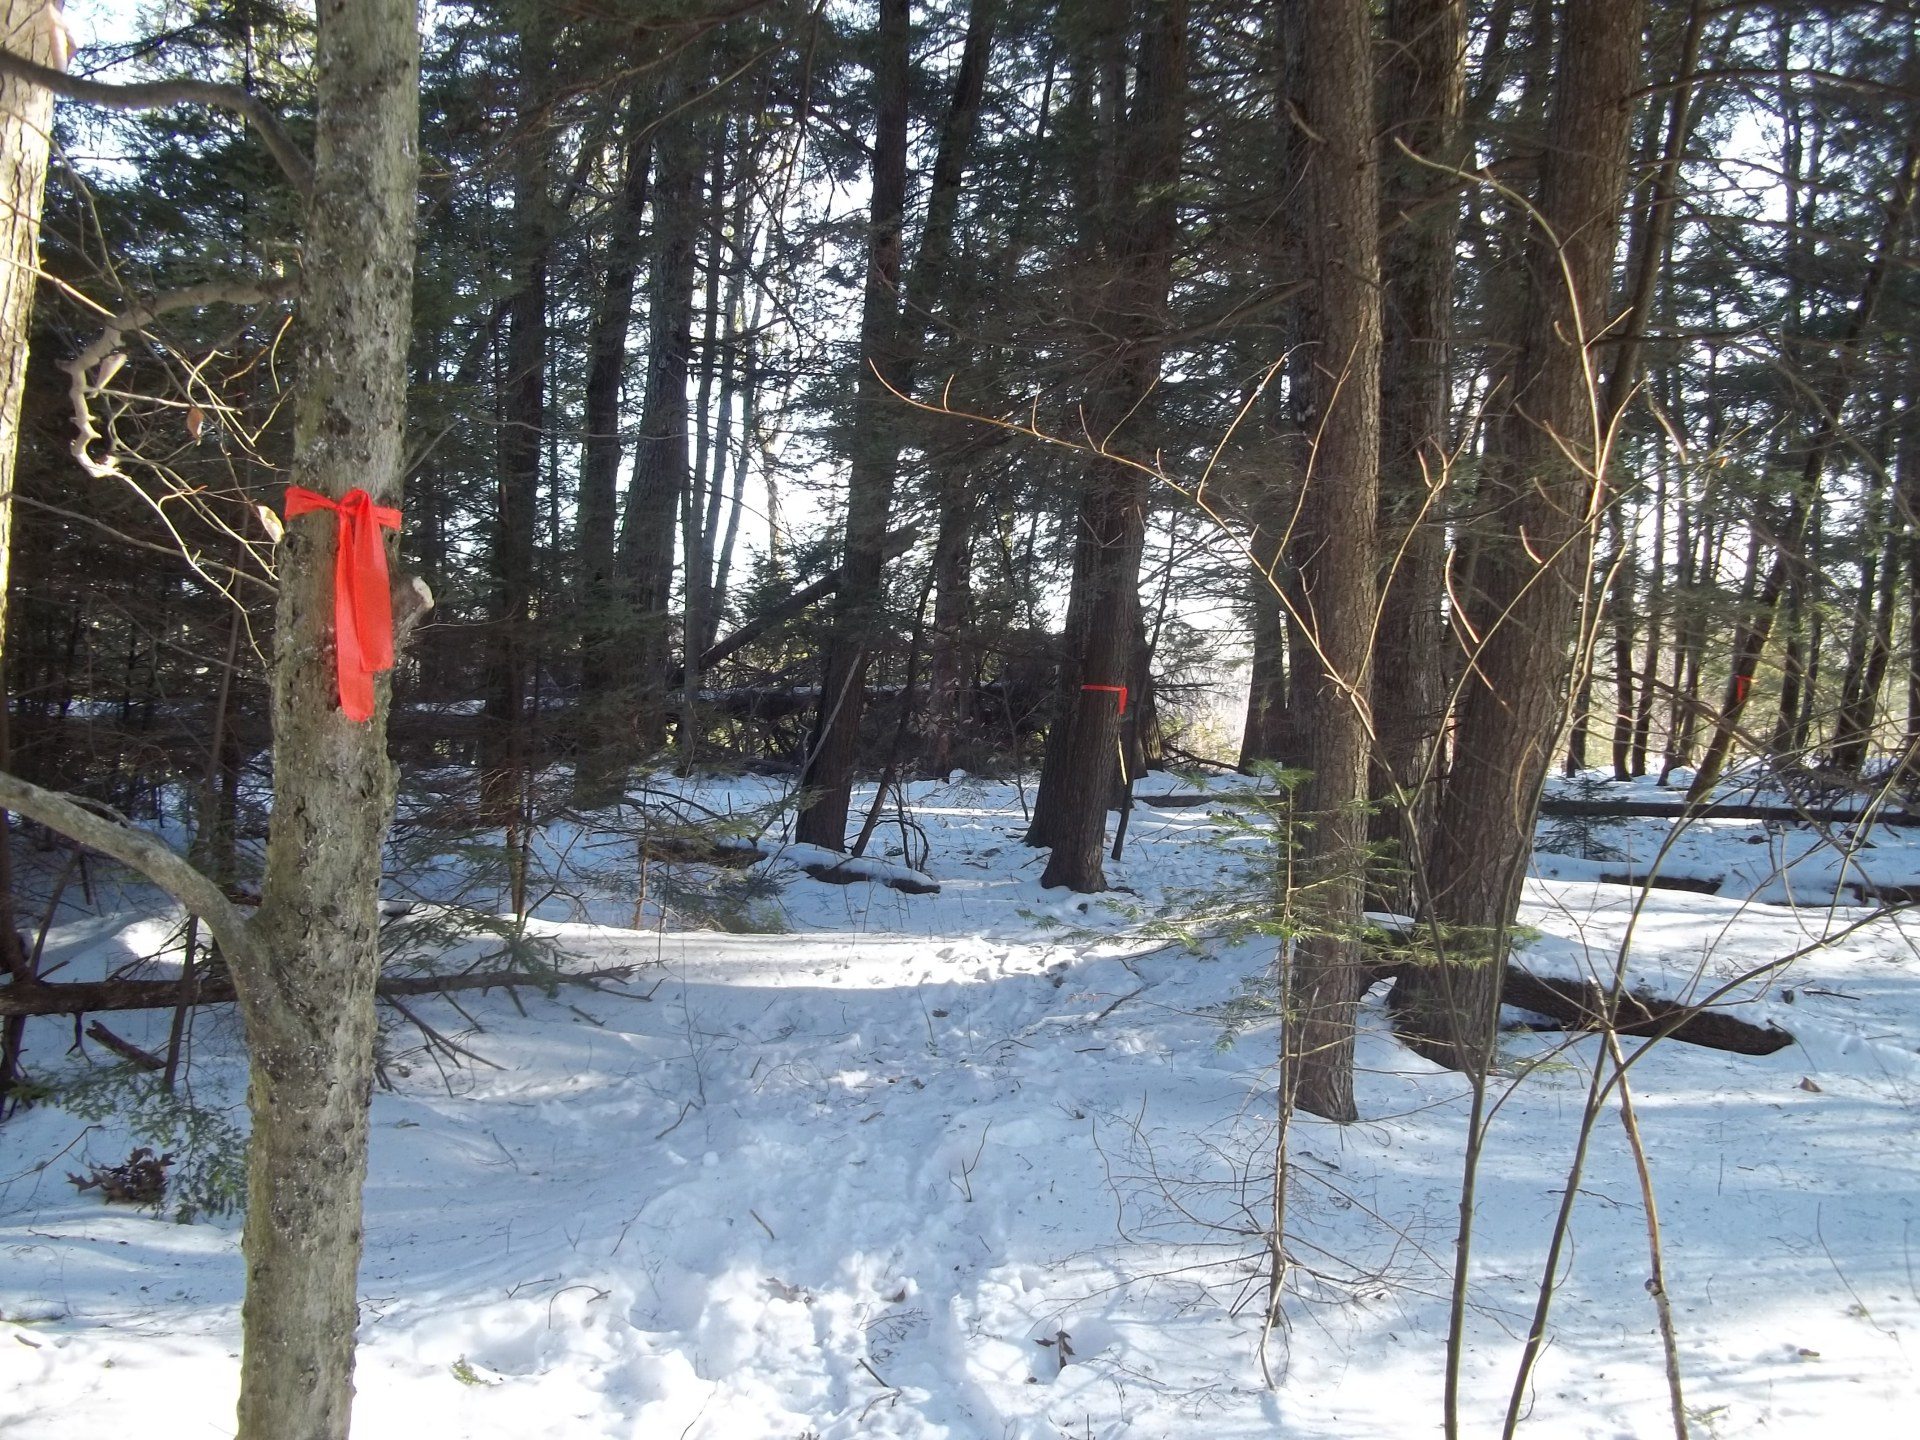 Building a trail around our hotel in Wiscasset Maine